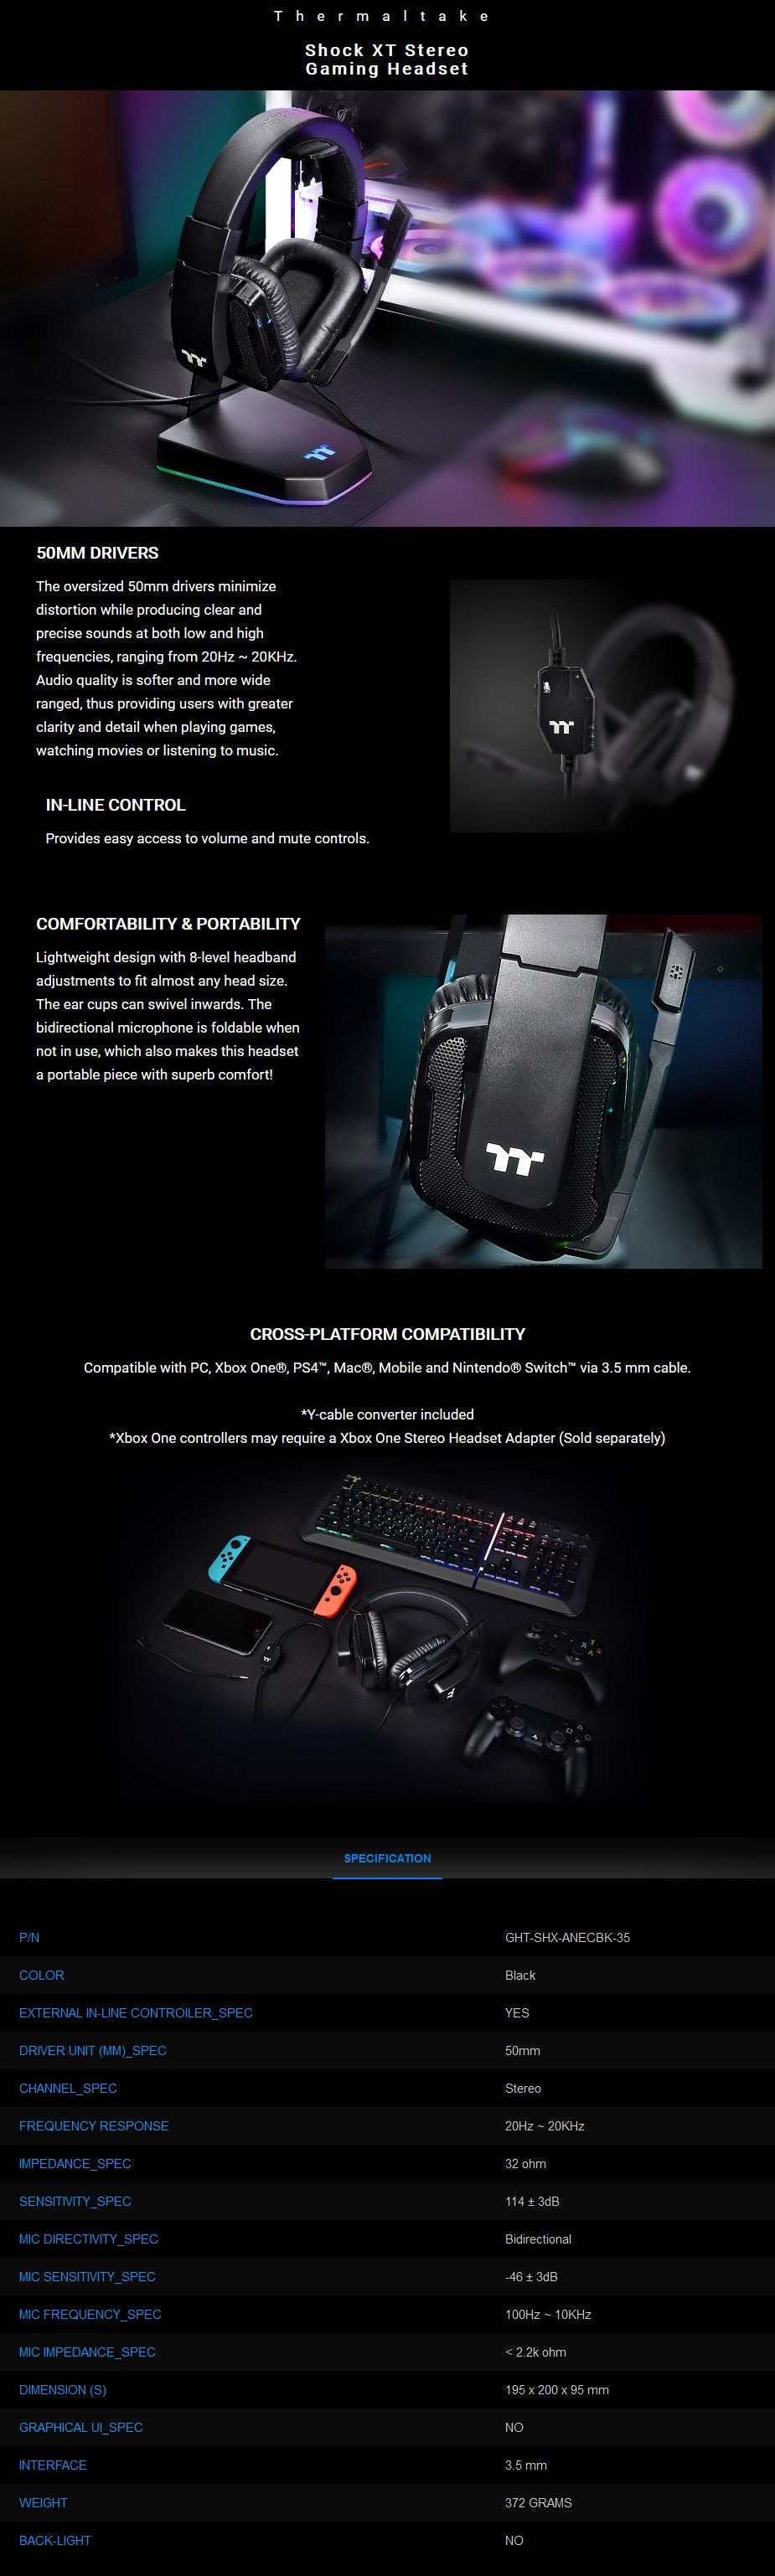 Thermaltake Gaming Shock XT Stereo Gaming Headset - Overview 1